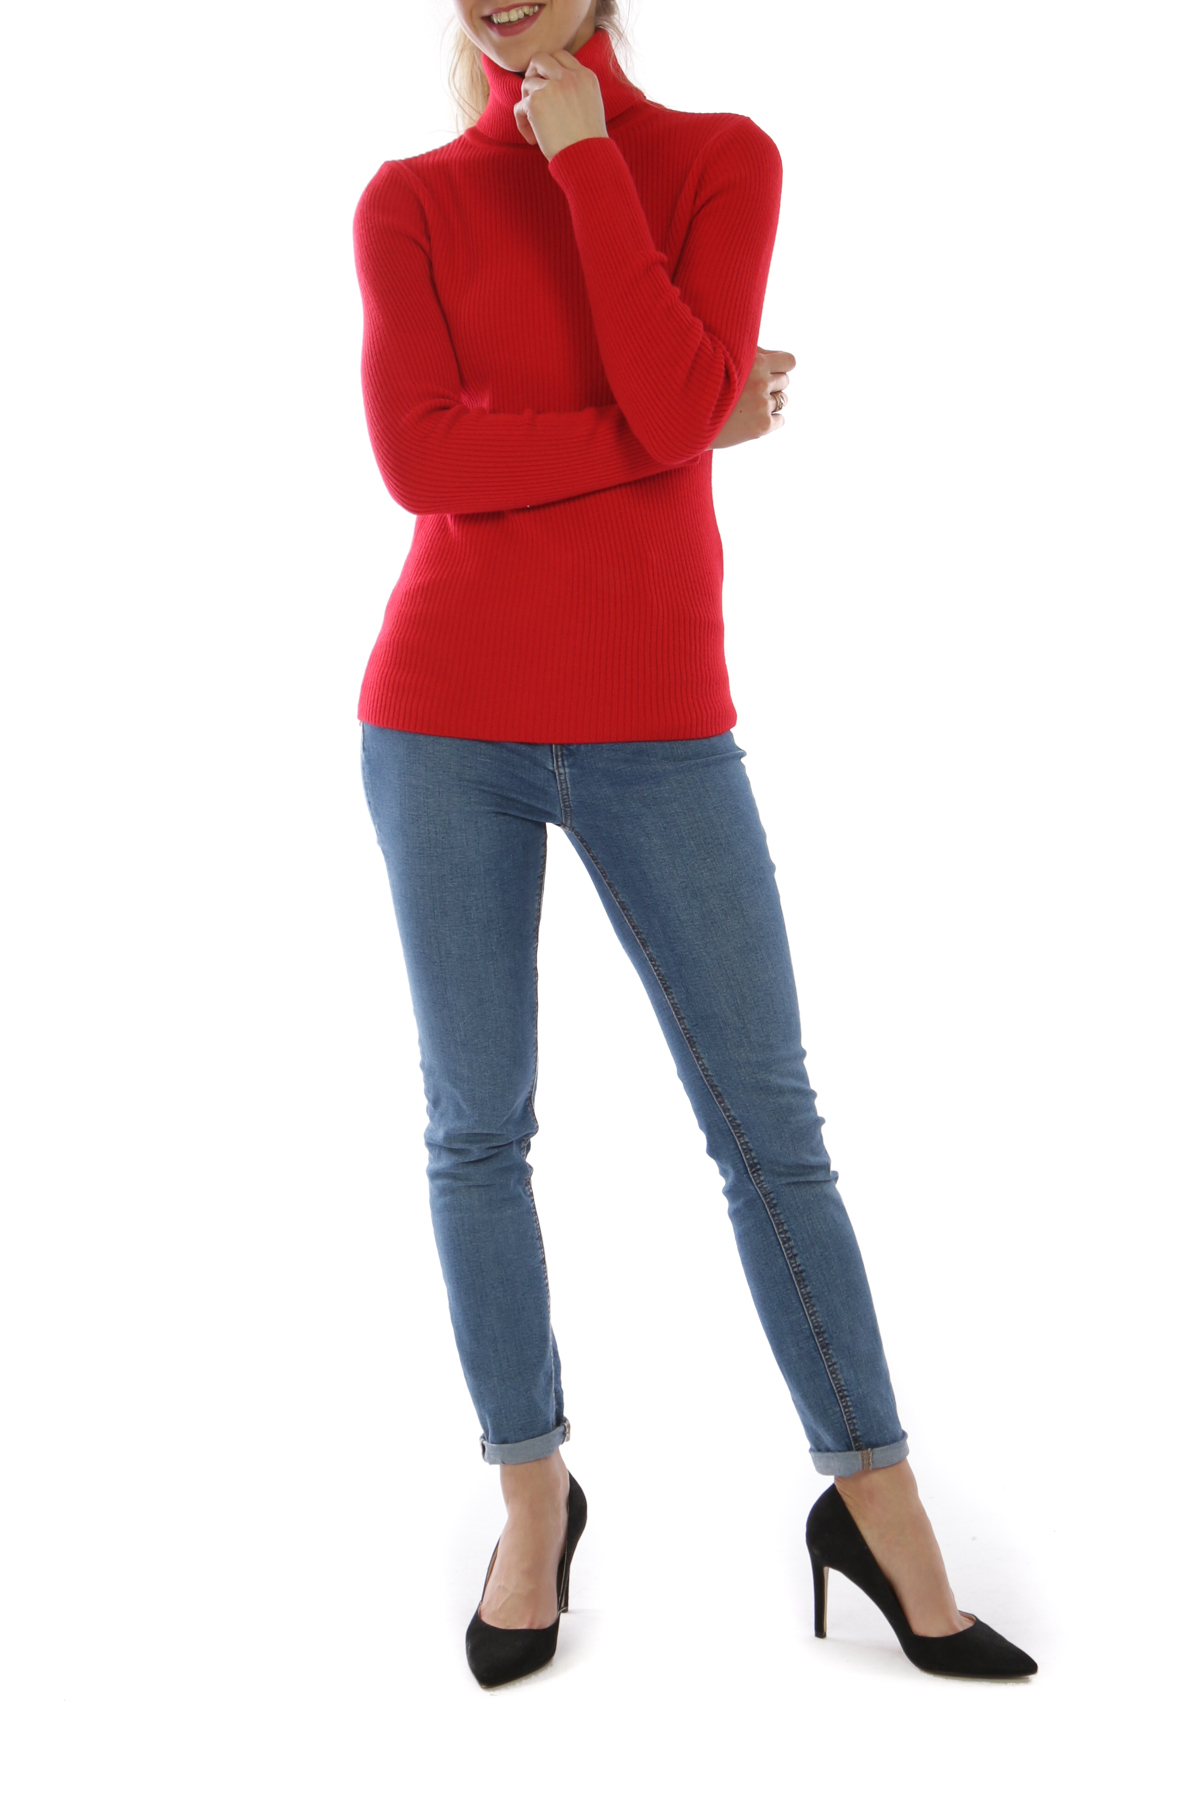 Jumpers Women Red Jus de pom & Co N2301 #c eFashion Paris